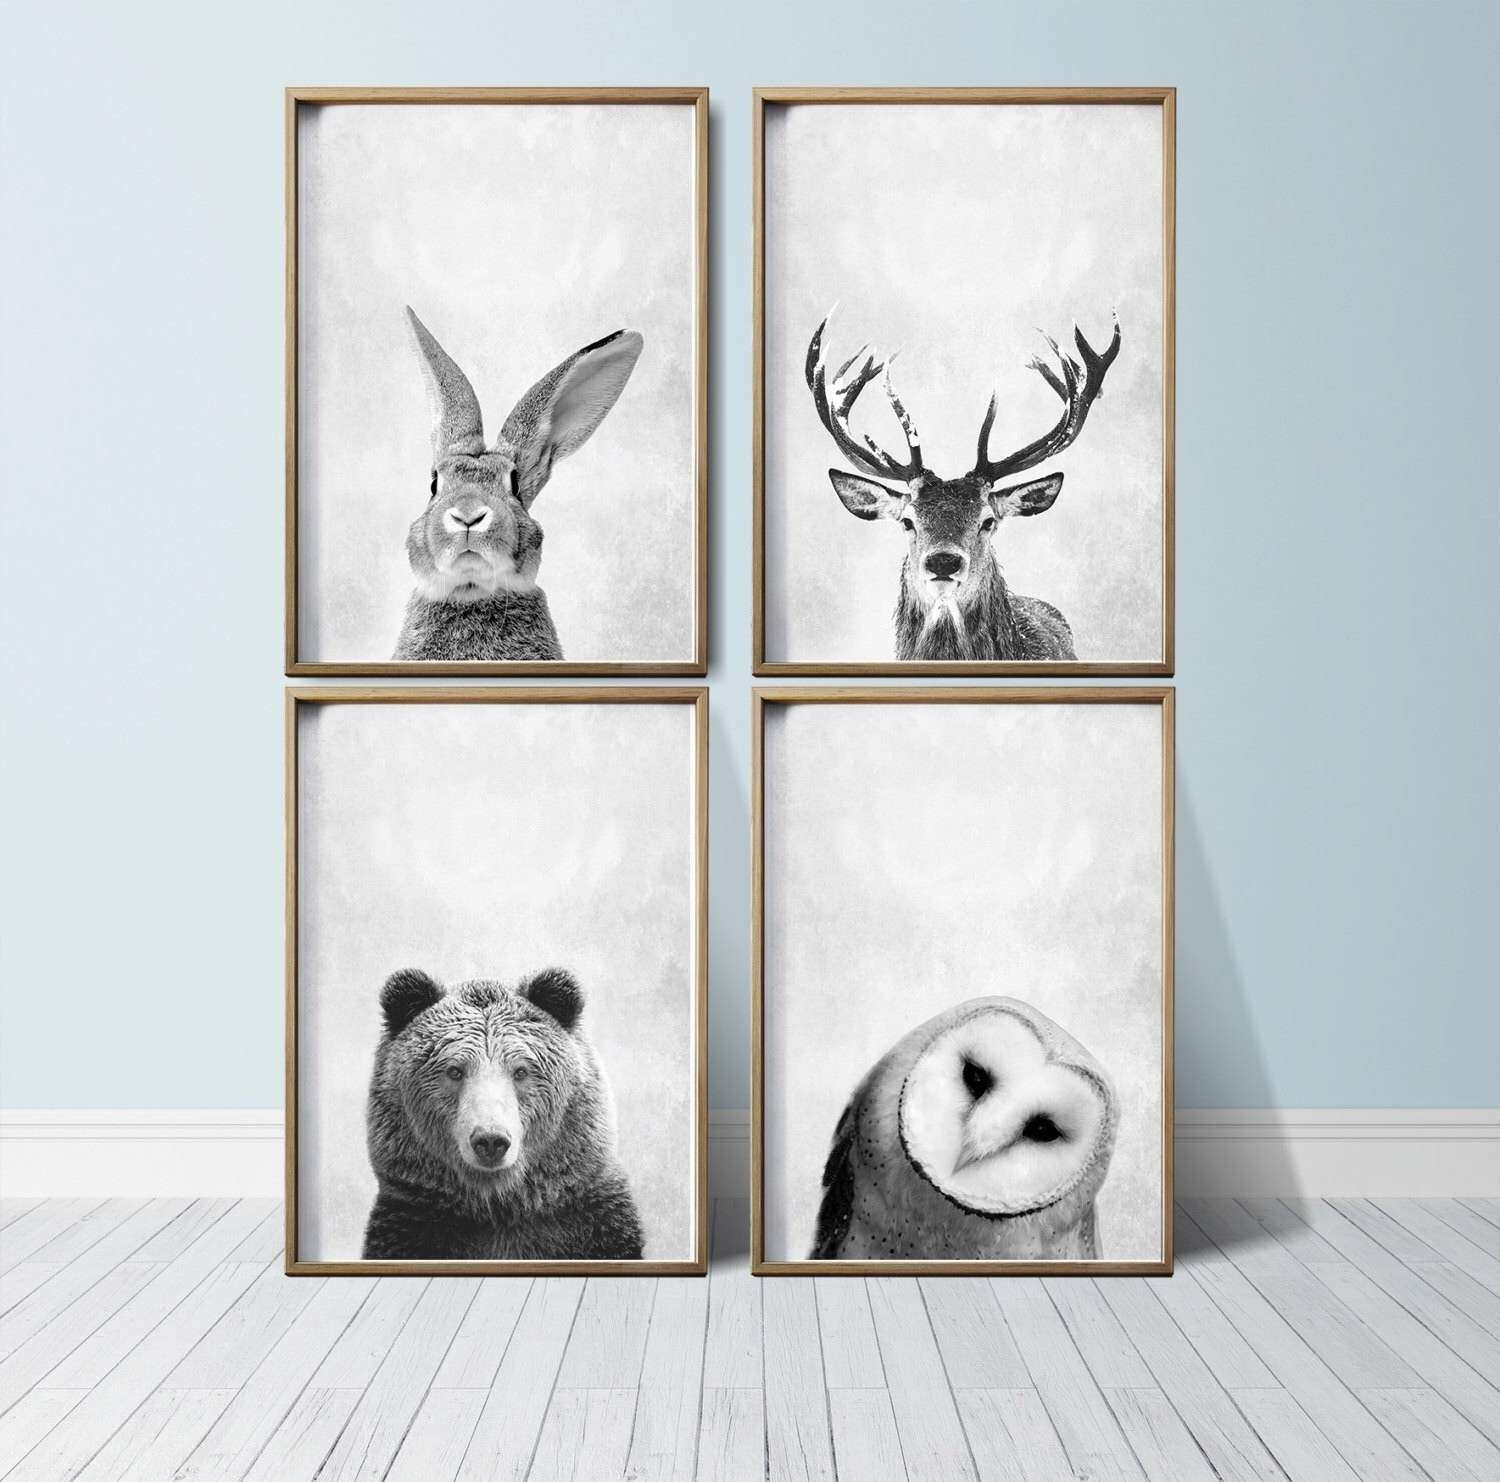 Unique Wall Art Prints Luxury Nursery Wall Art Animal Print Art With Best And Newest Woodland Nursery Wall Art (View 9 of 20)